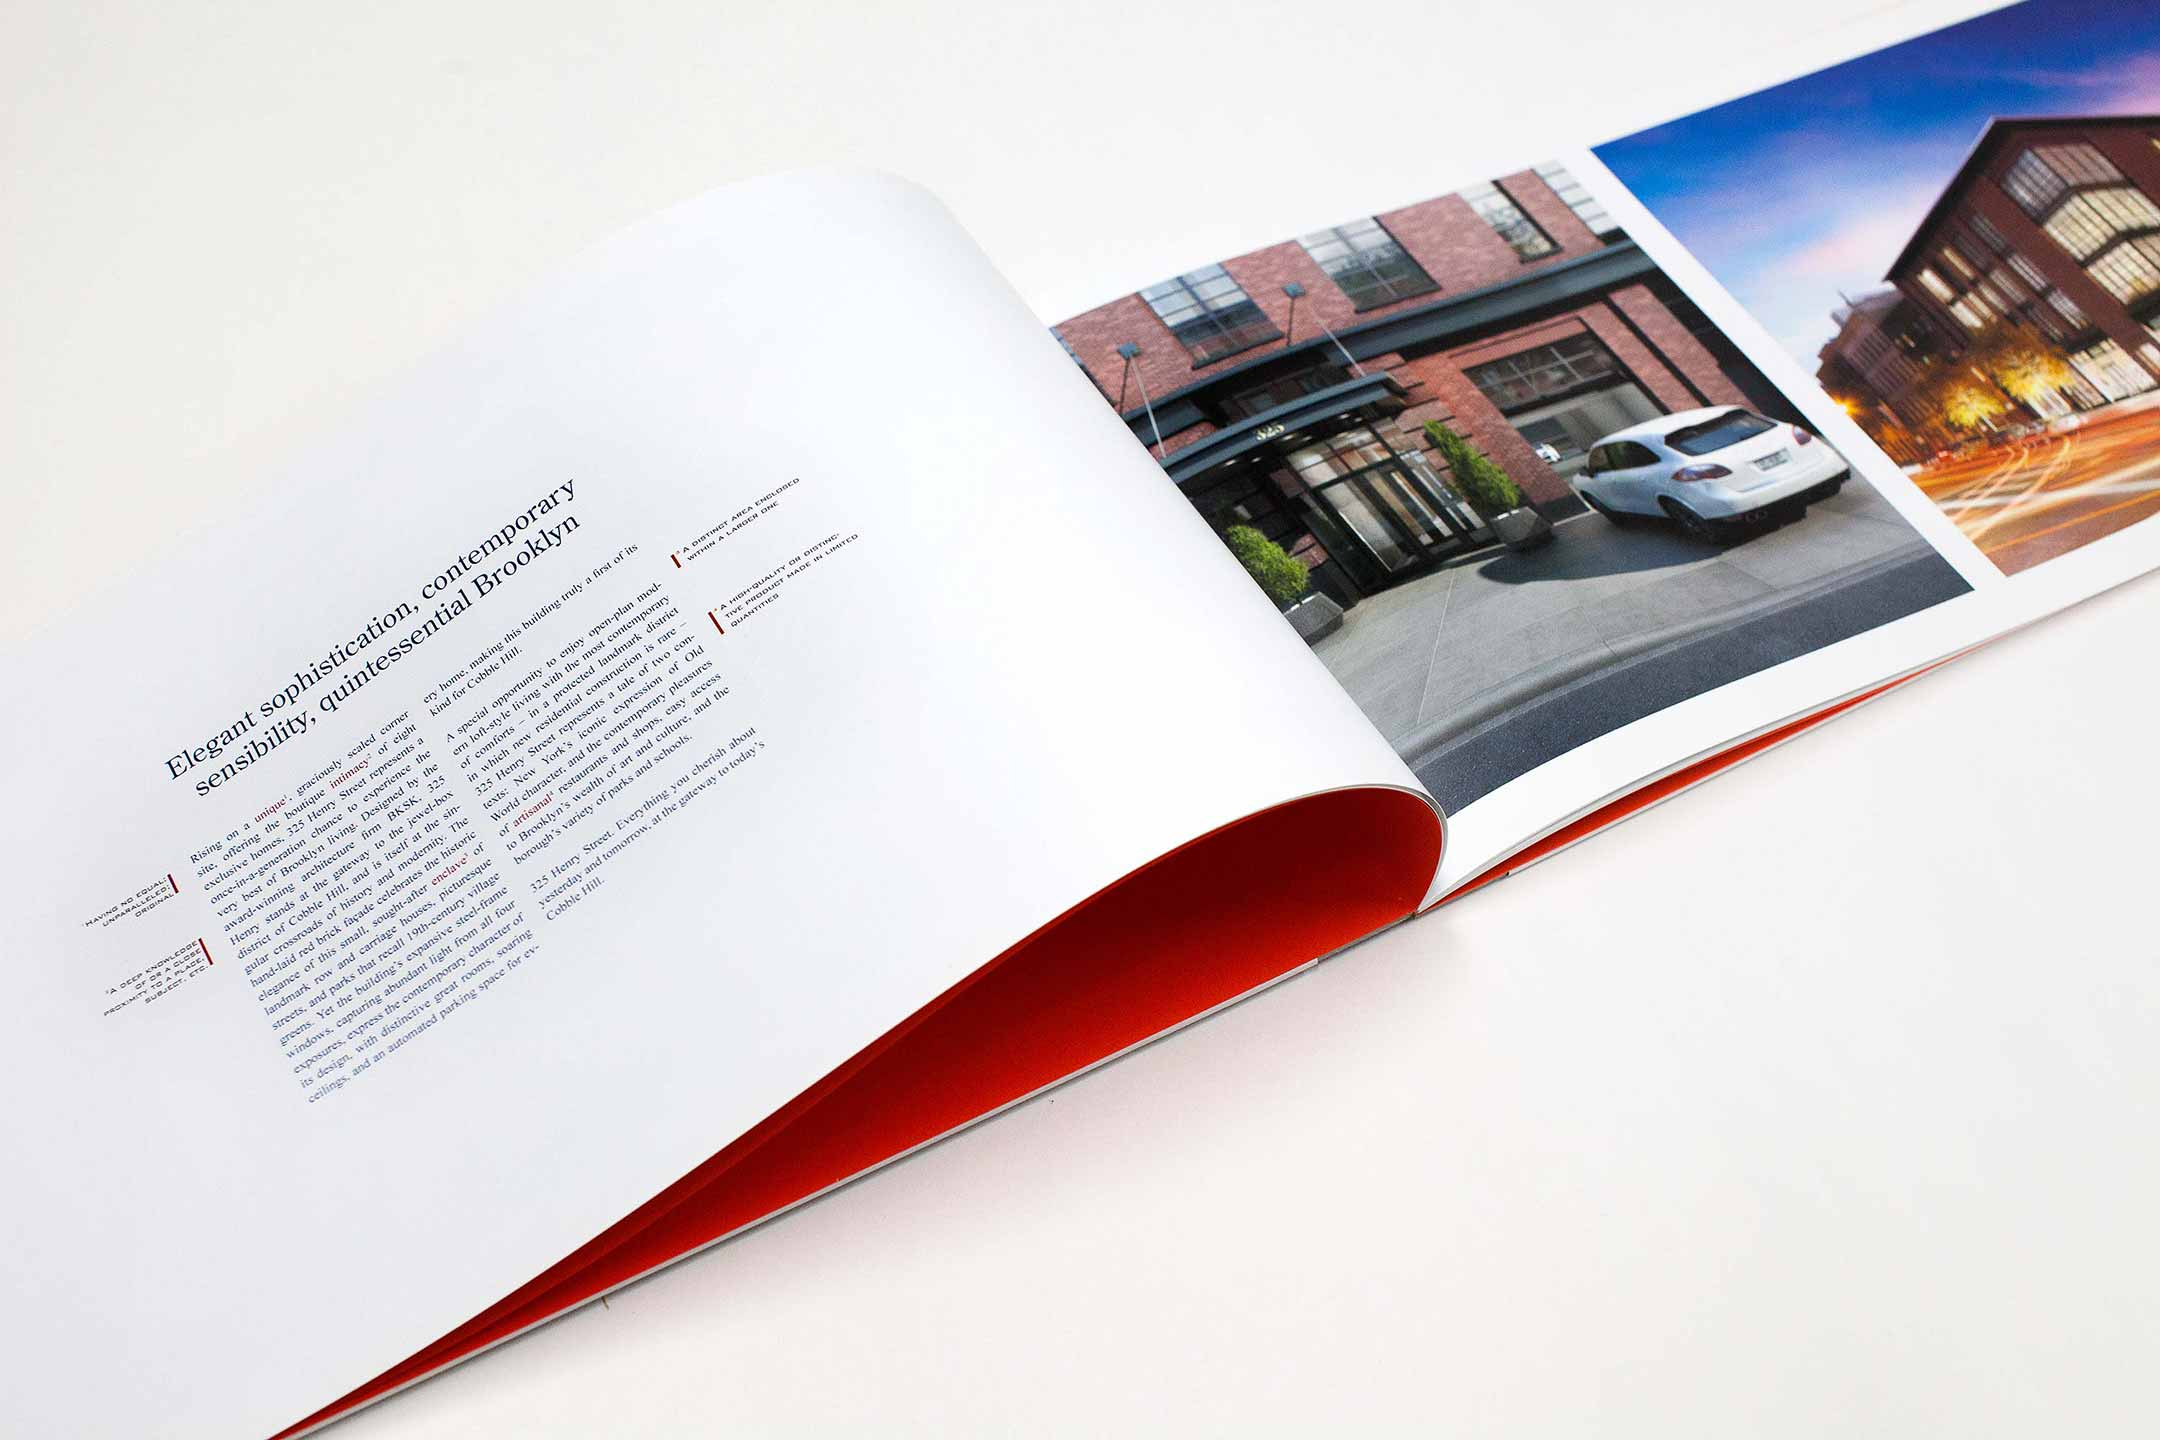 Image of art book spread showing car entering garage